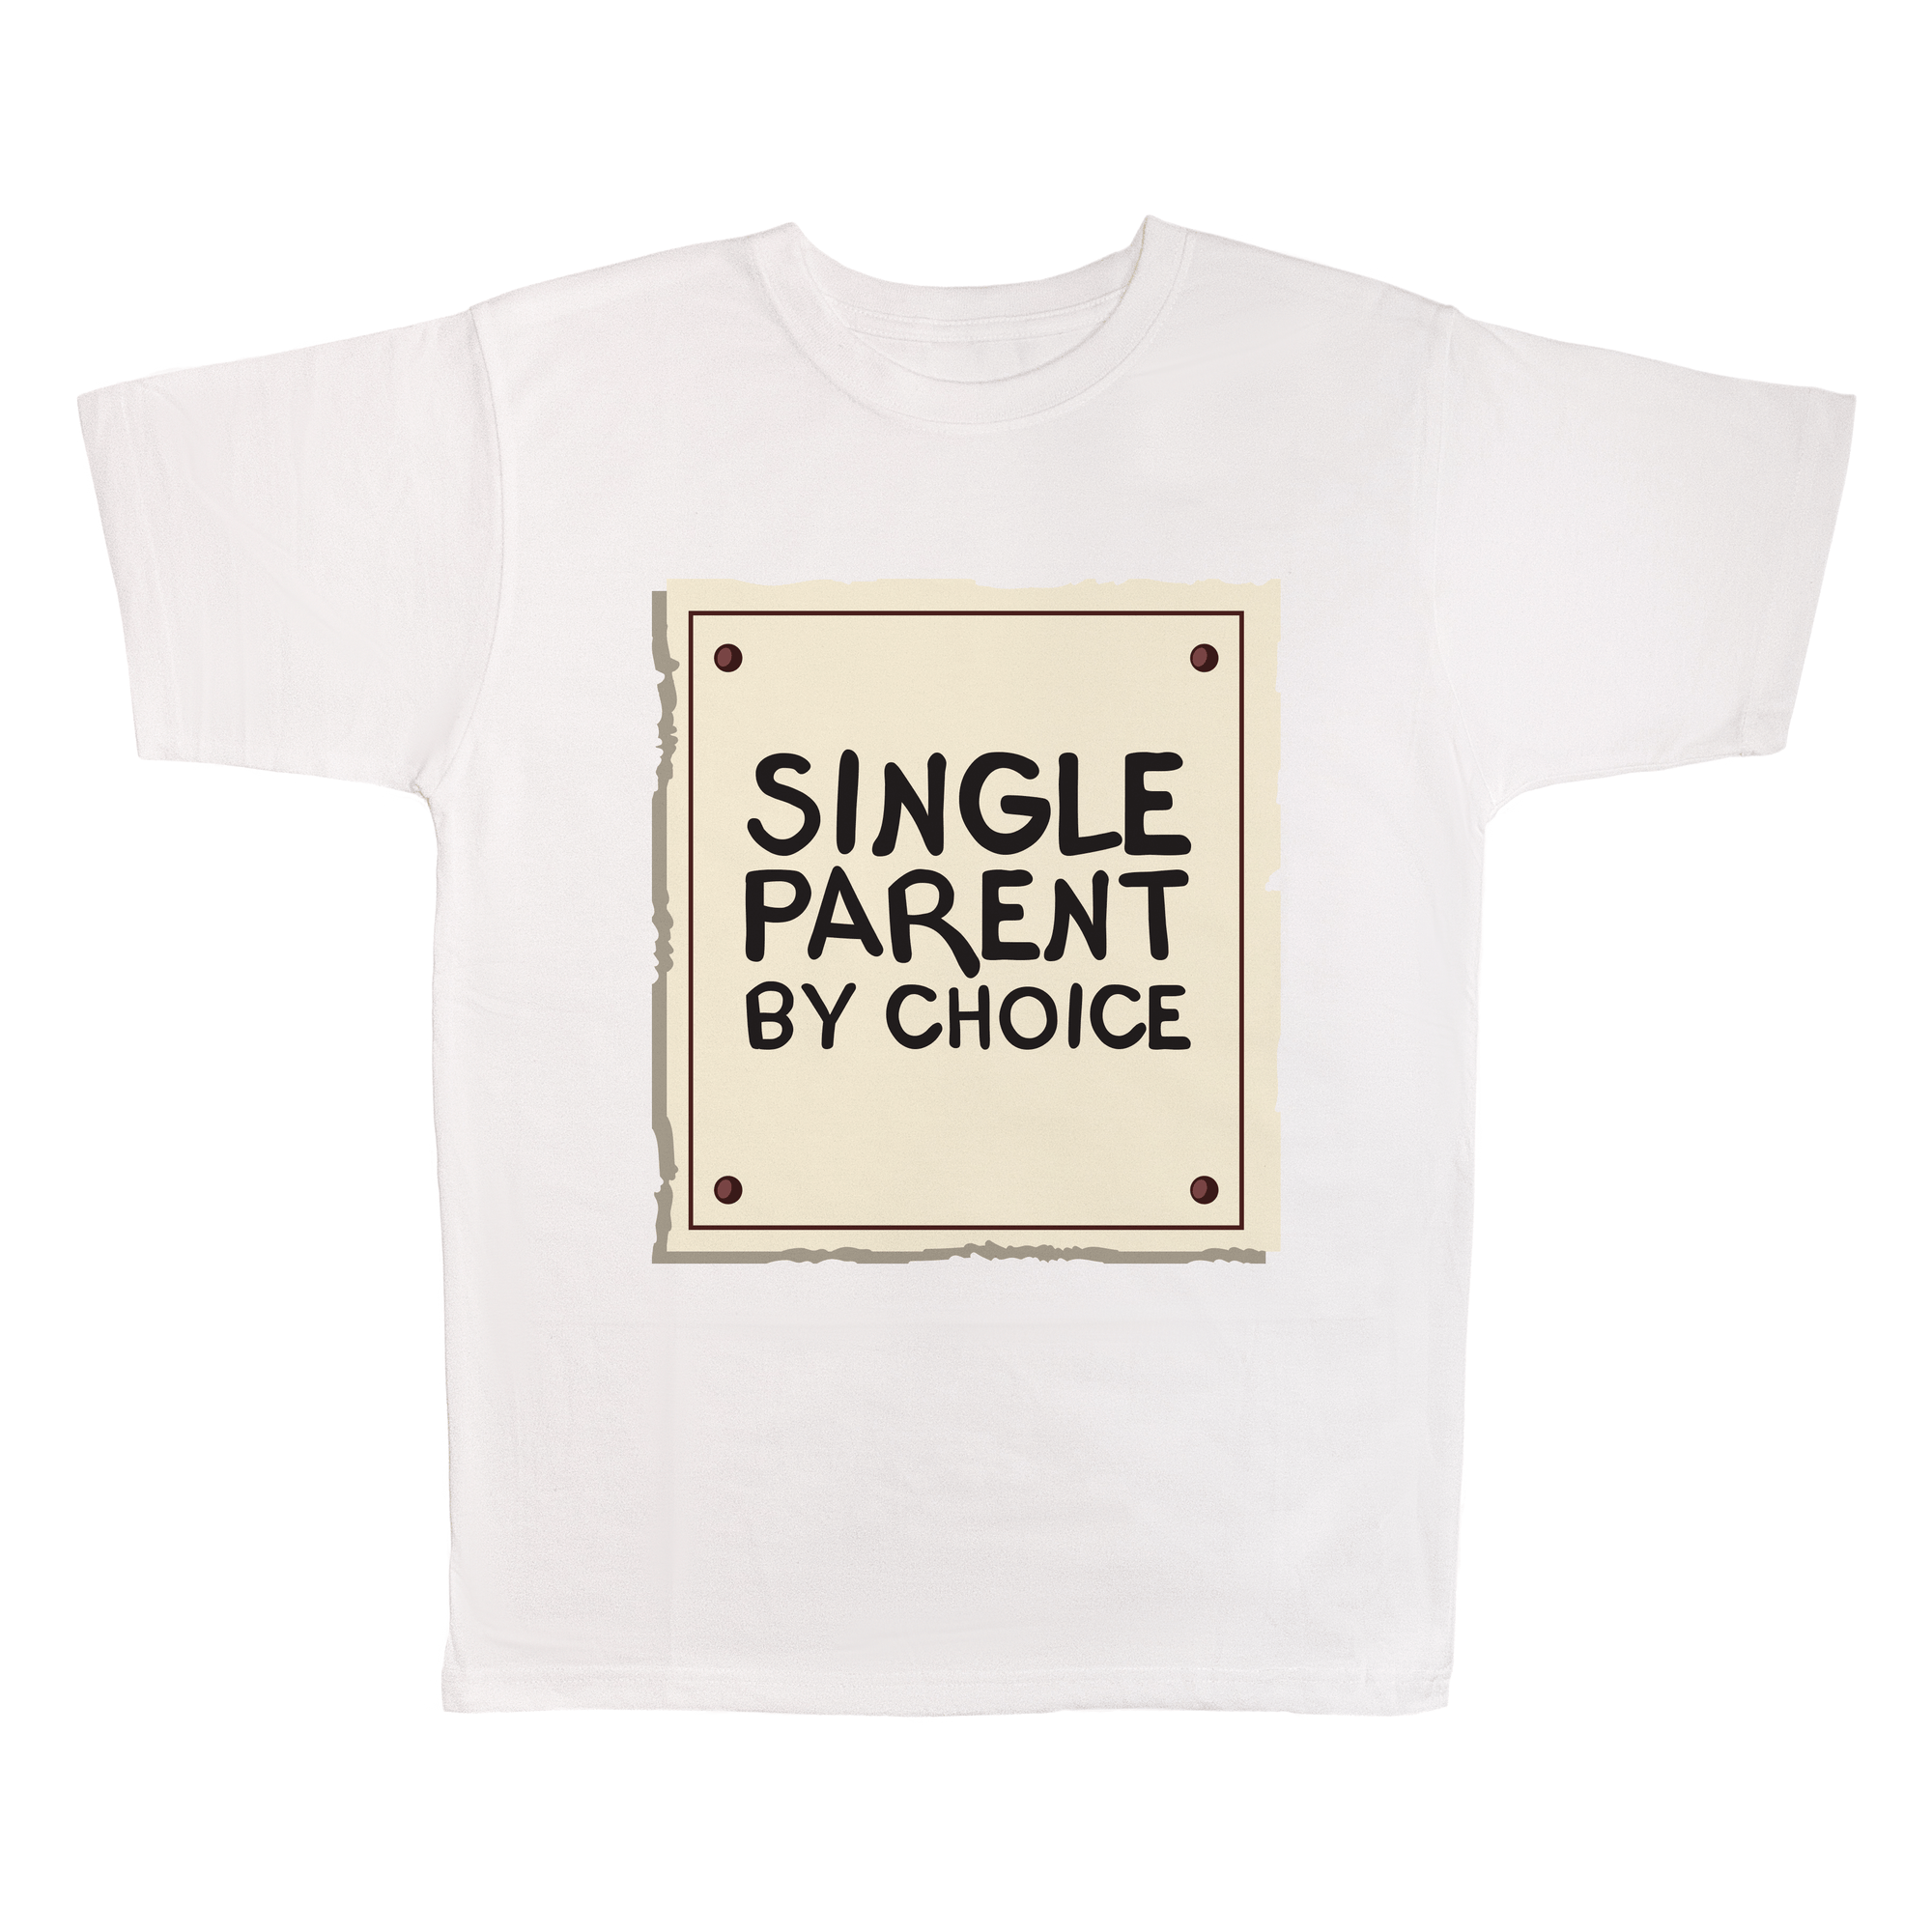 Single Parent By Choice, 100% Polyester Adult Shirt